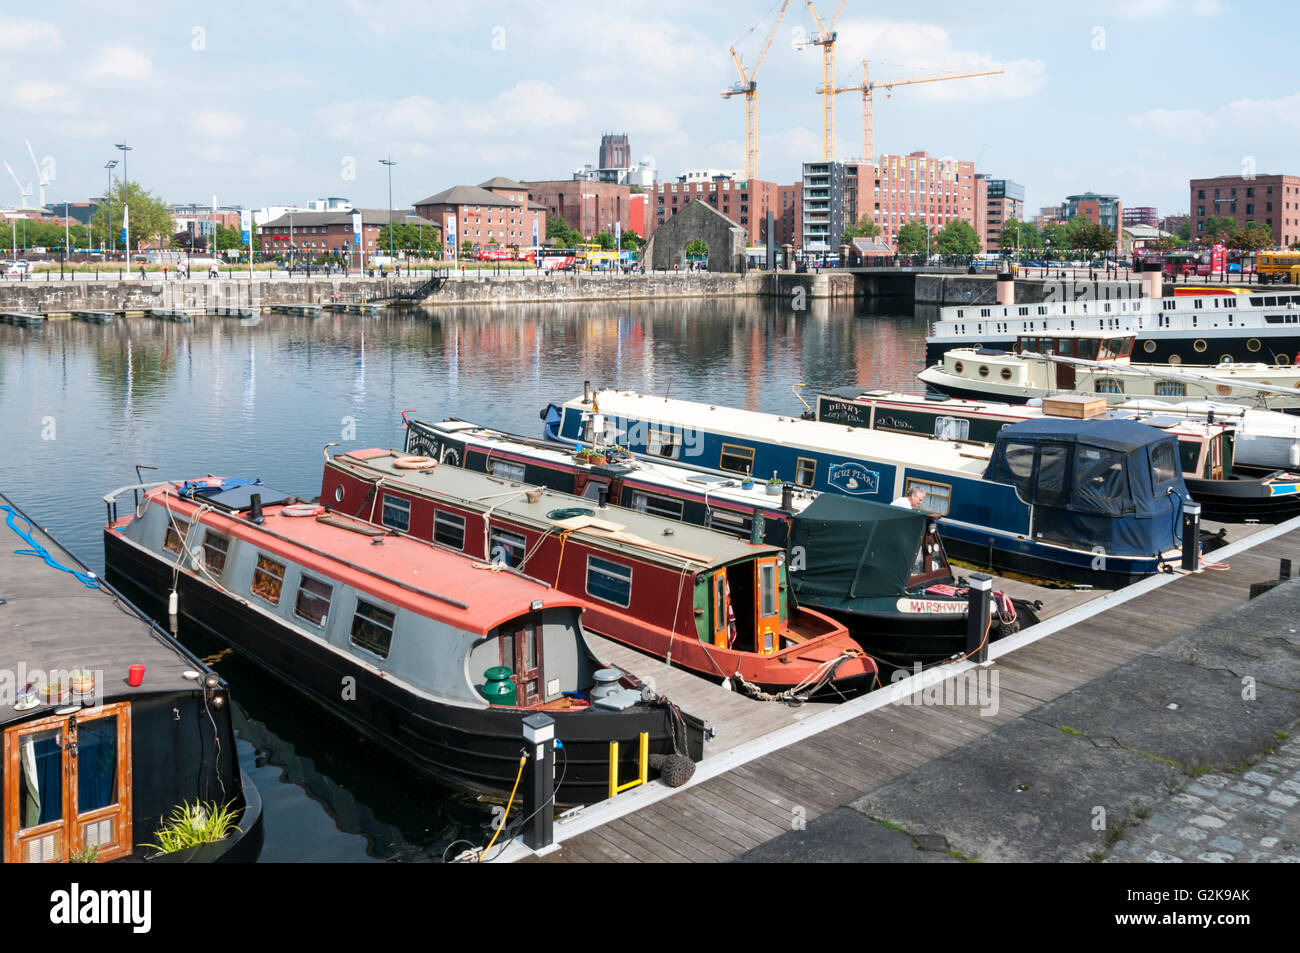 Canal narrowboats moored in the Grade II listed Salthouse Dock, Liverpool. - Stock Image